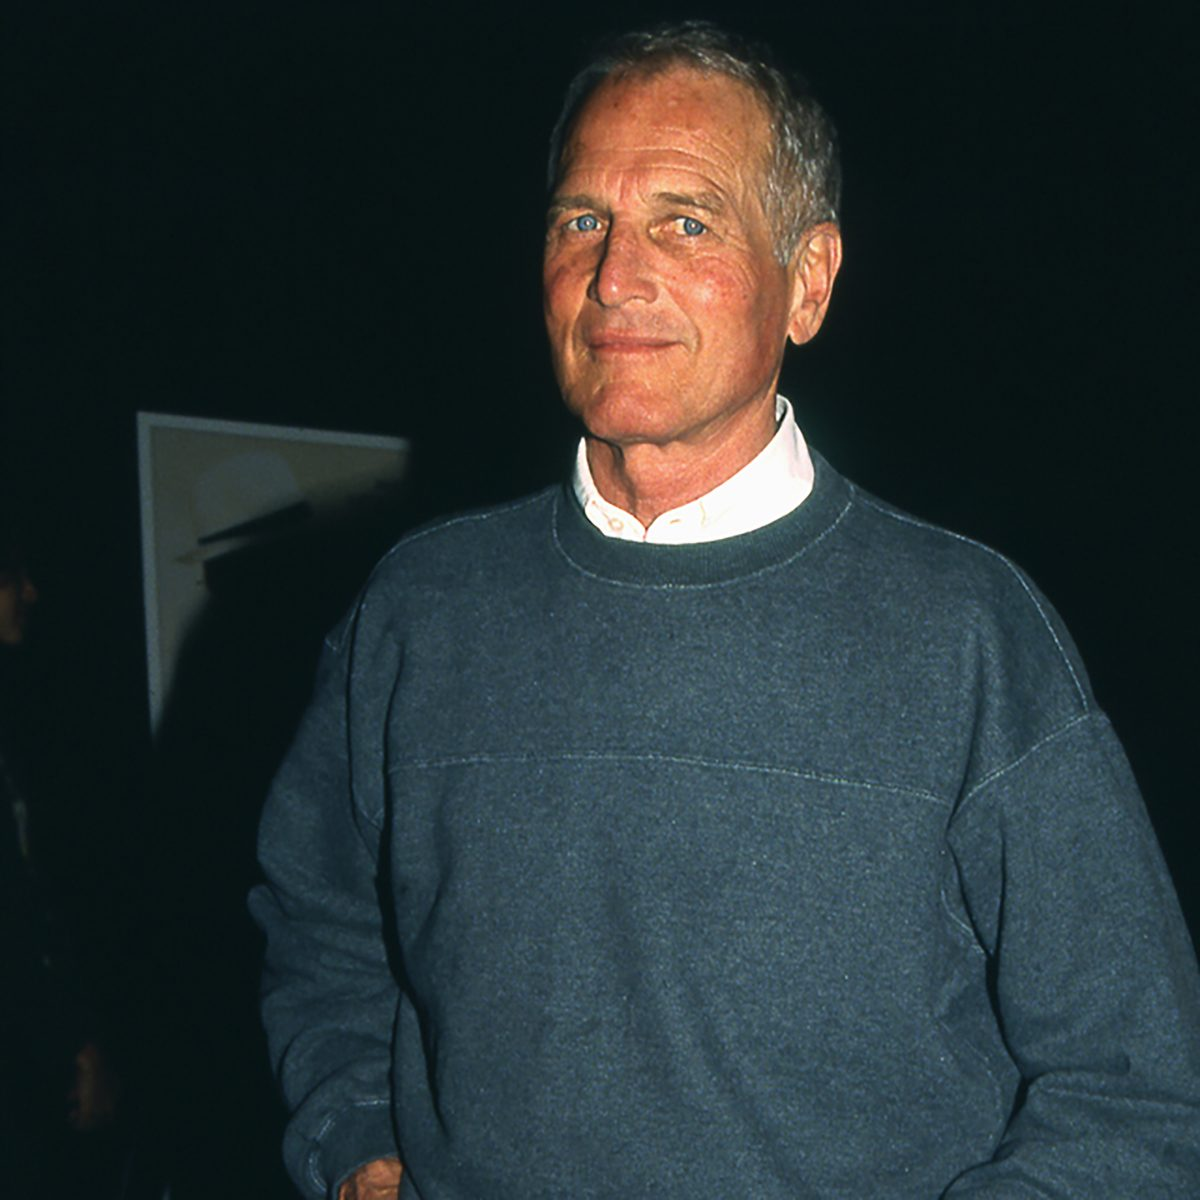 Rare photo of Paul Newman at a celebrity event